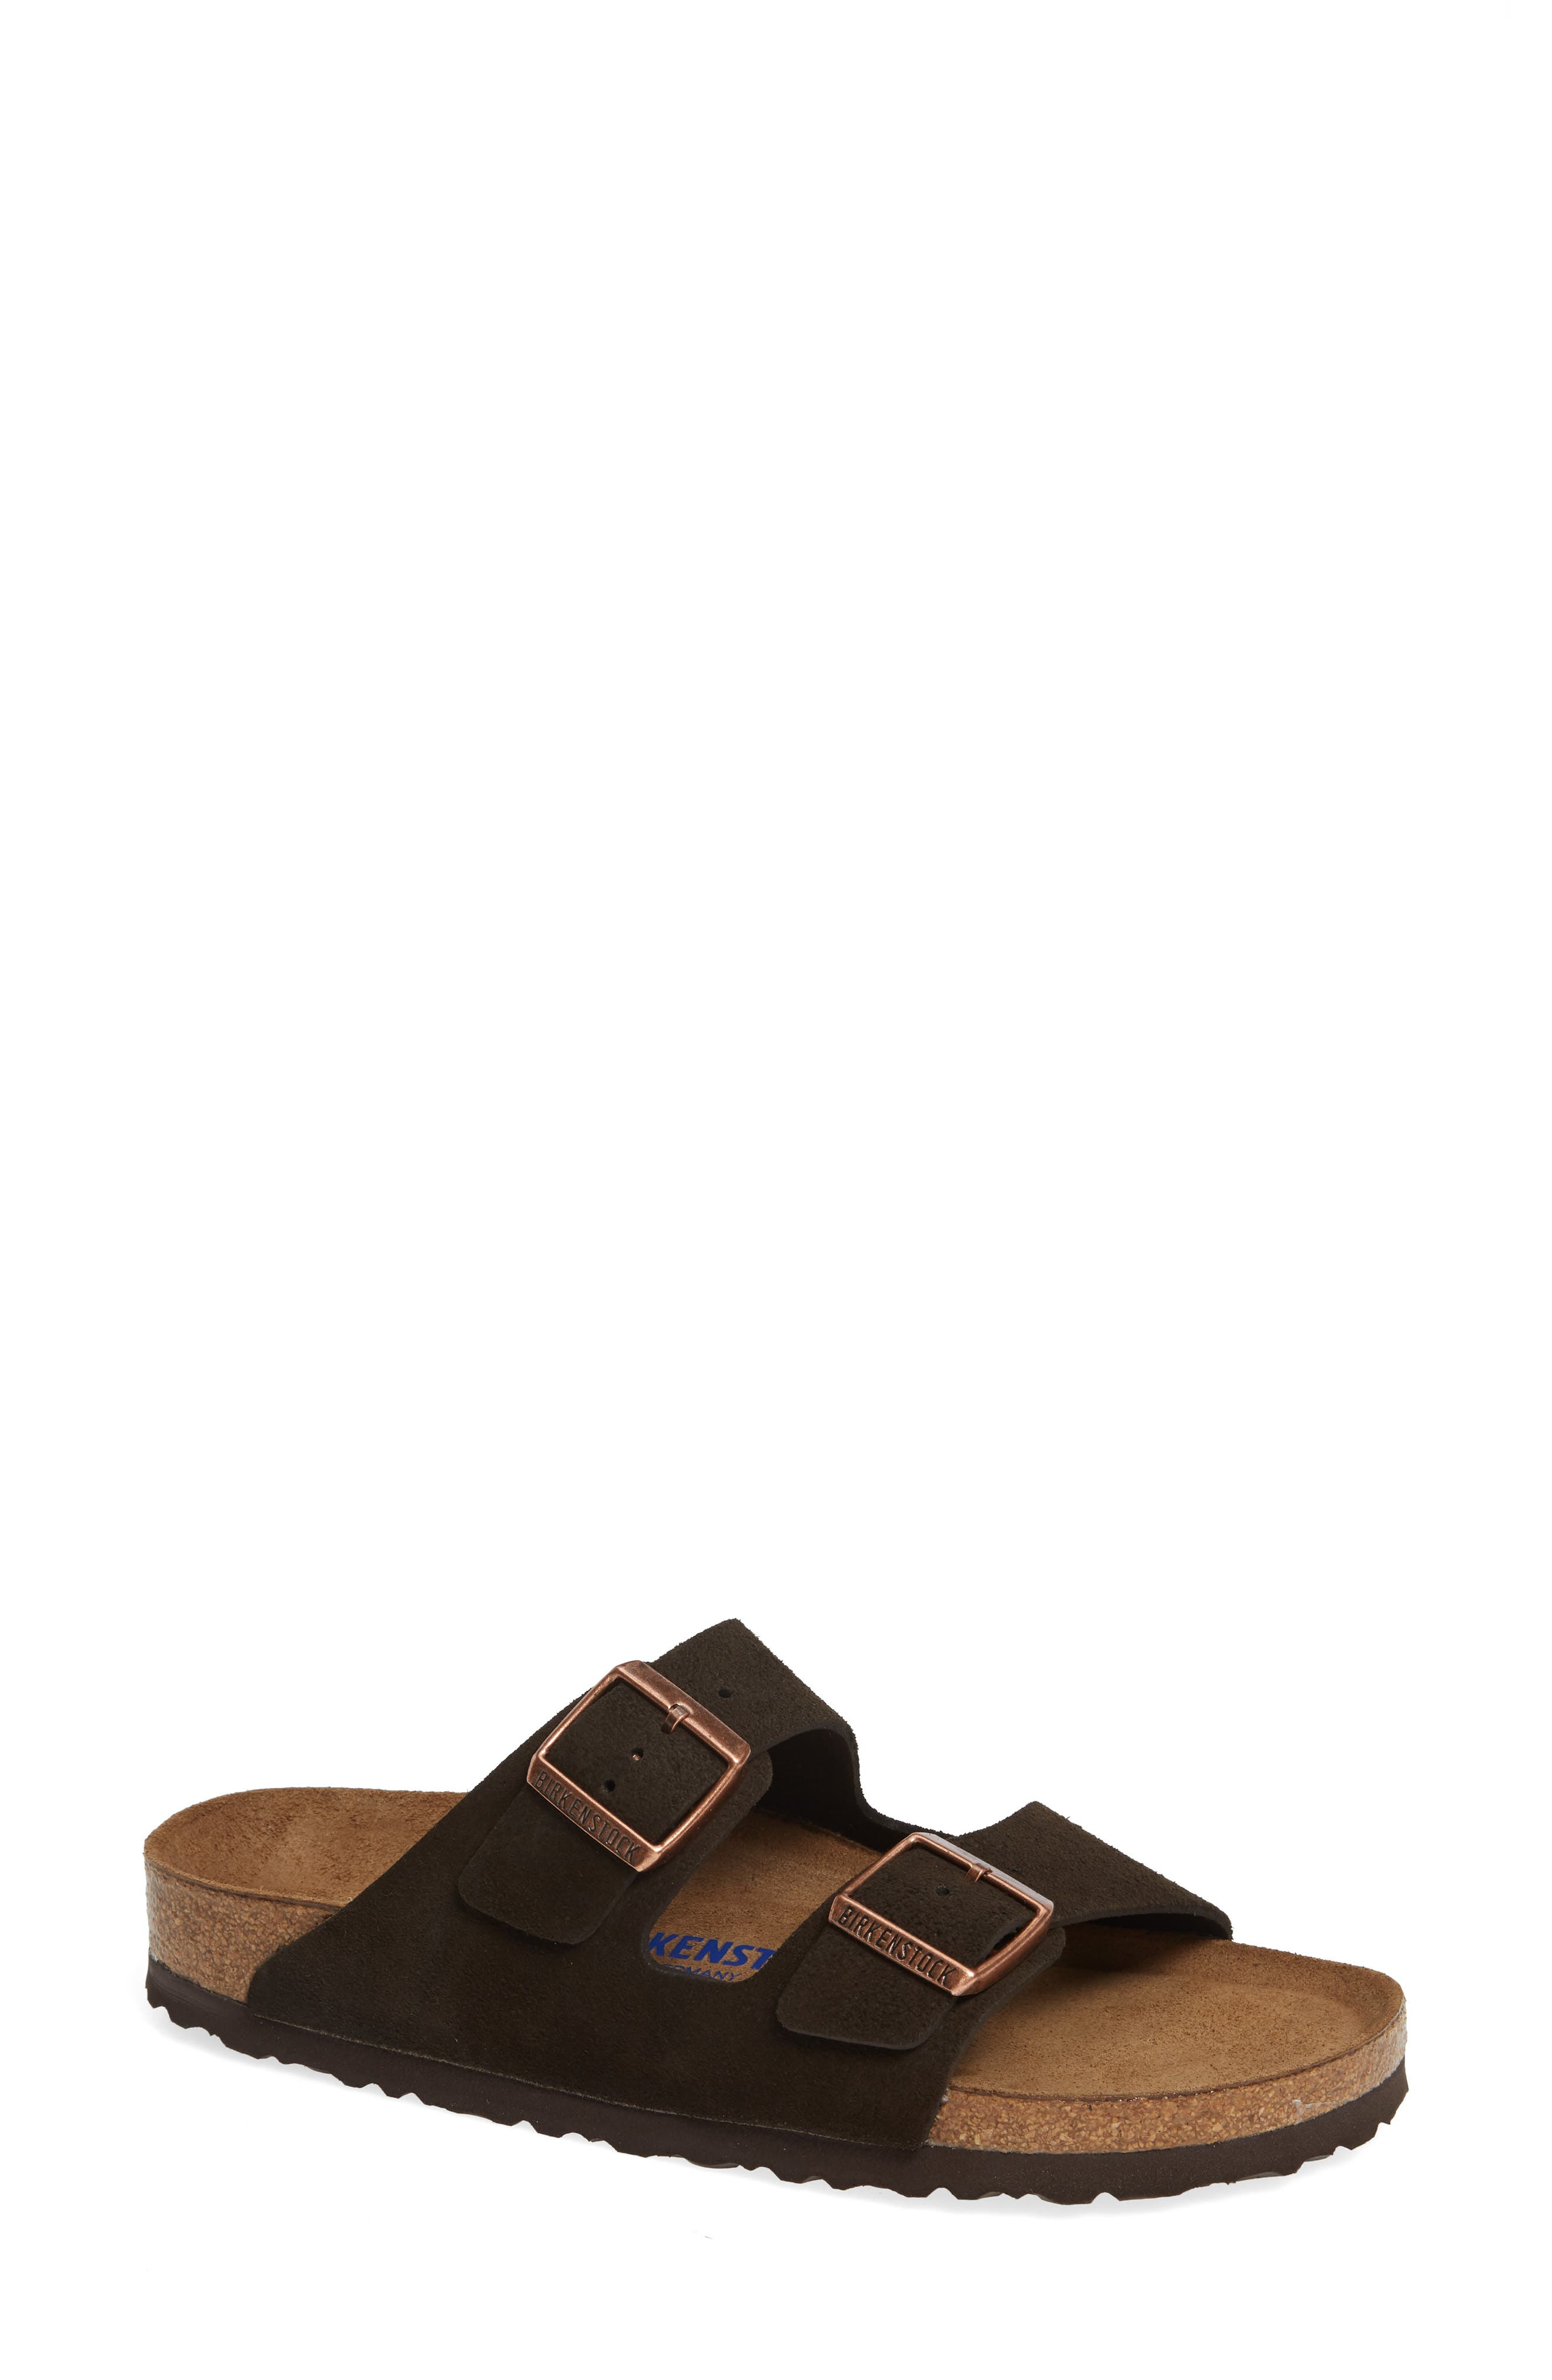 'Arizona' Soft Footbed Suede Sandal,                             Main thumbnail 1, color,                             MOCHA SUEDE